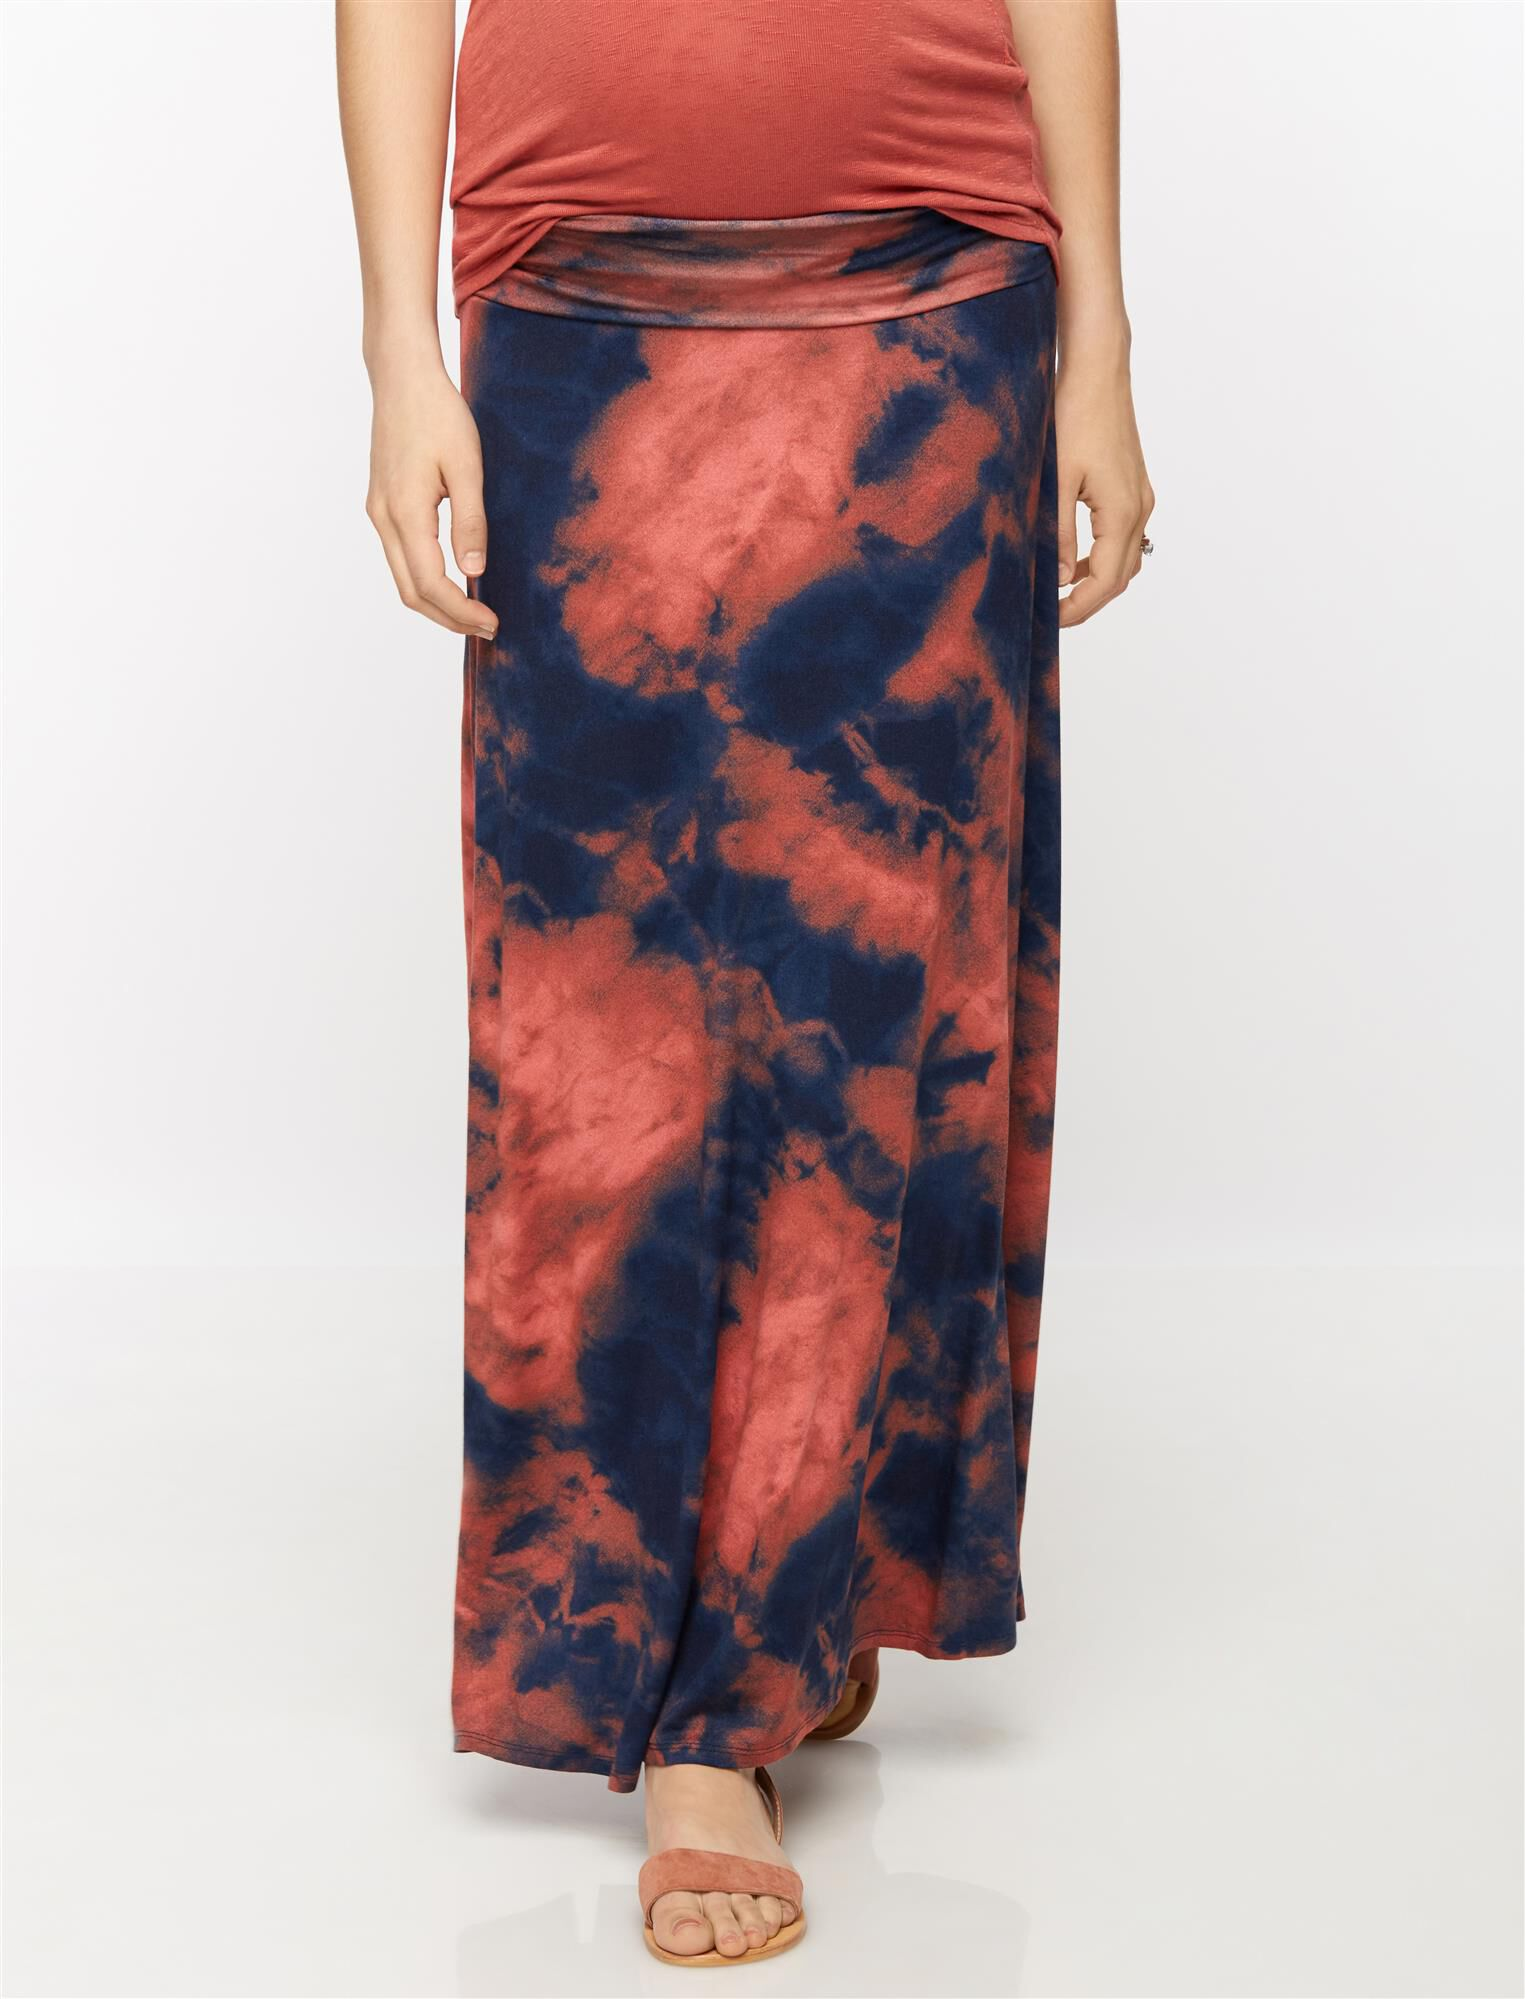 Self Belly Tie Dye Maxi Maternity Skirt